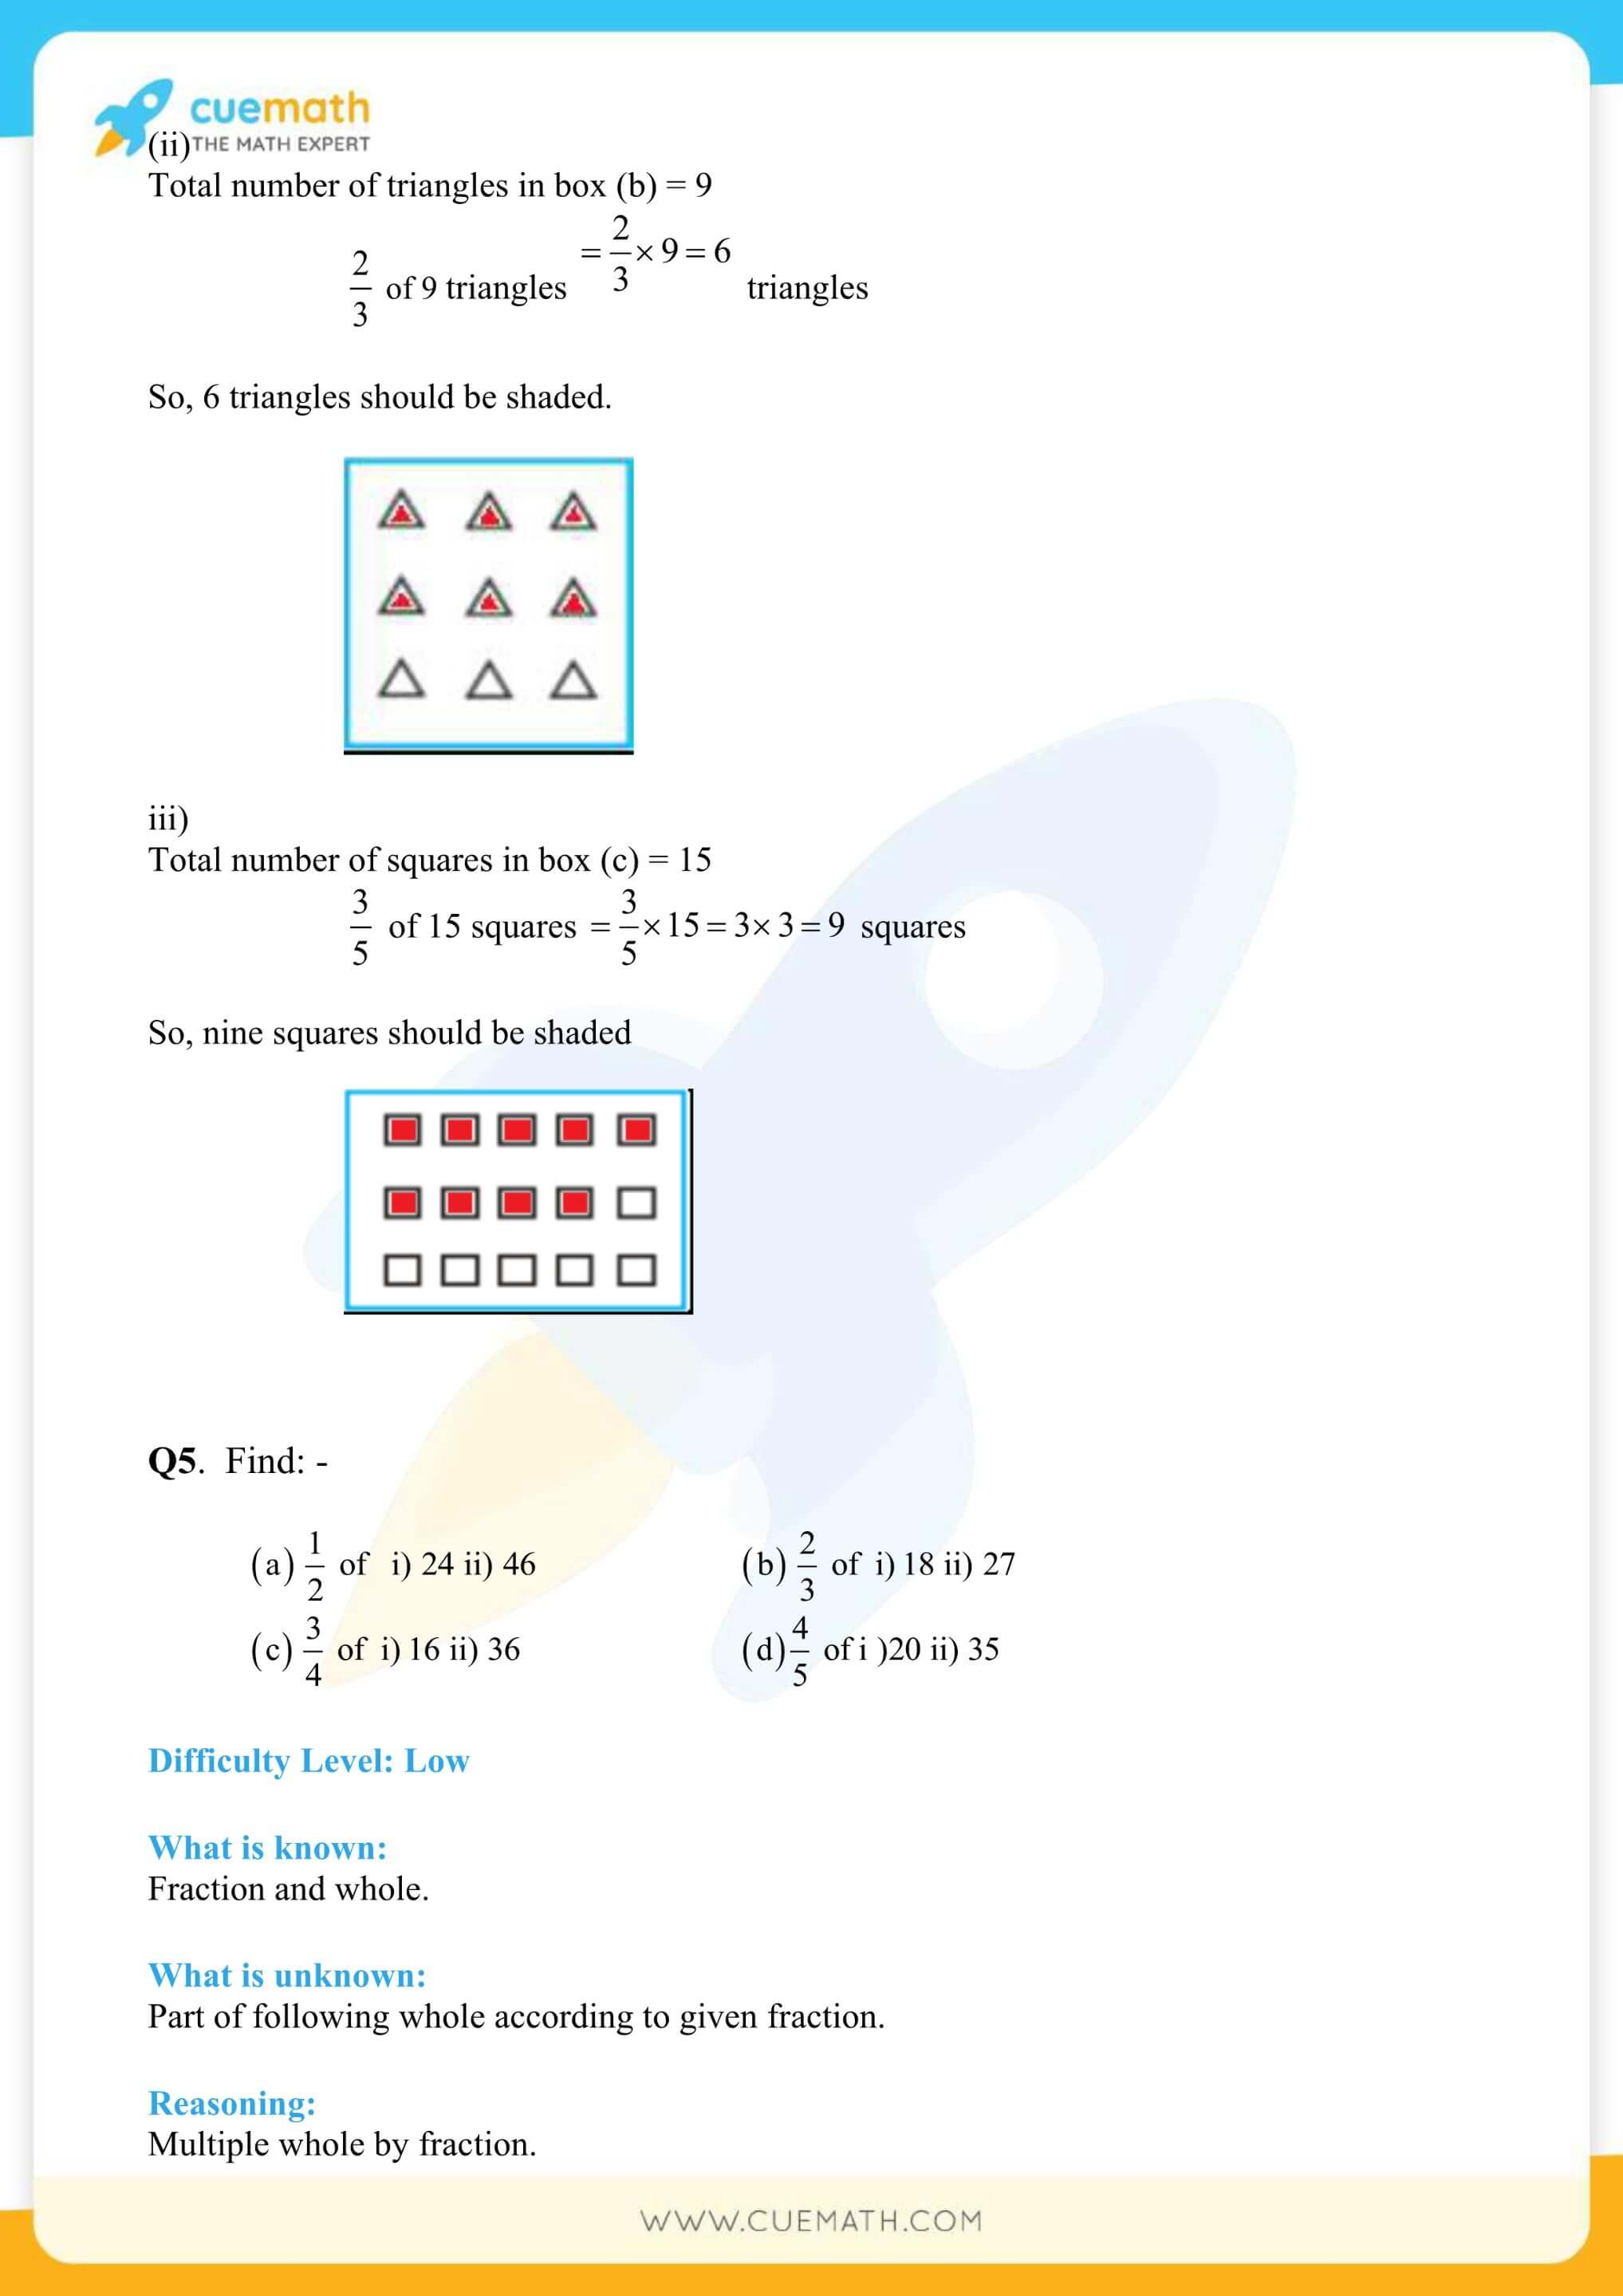 NCERT Solutions Class 7 Math Chapter 2 Fractions And Decimals 15